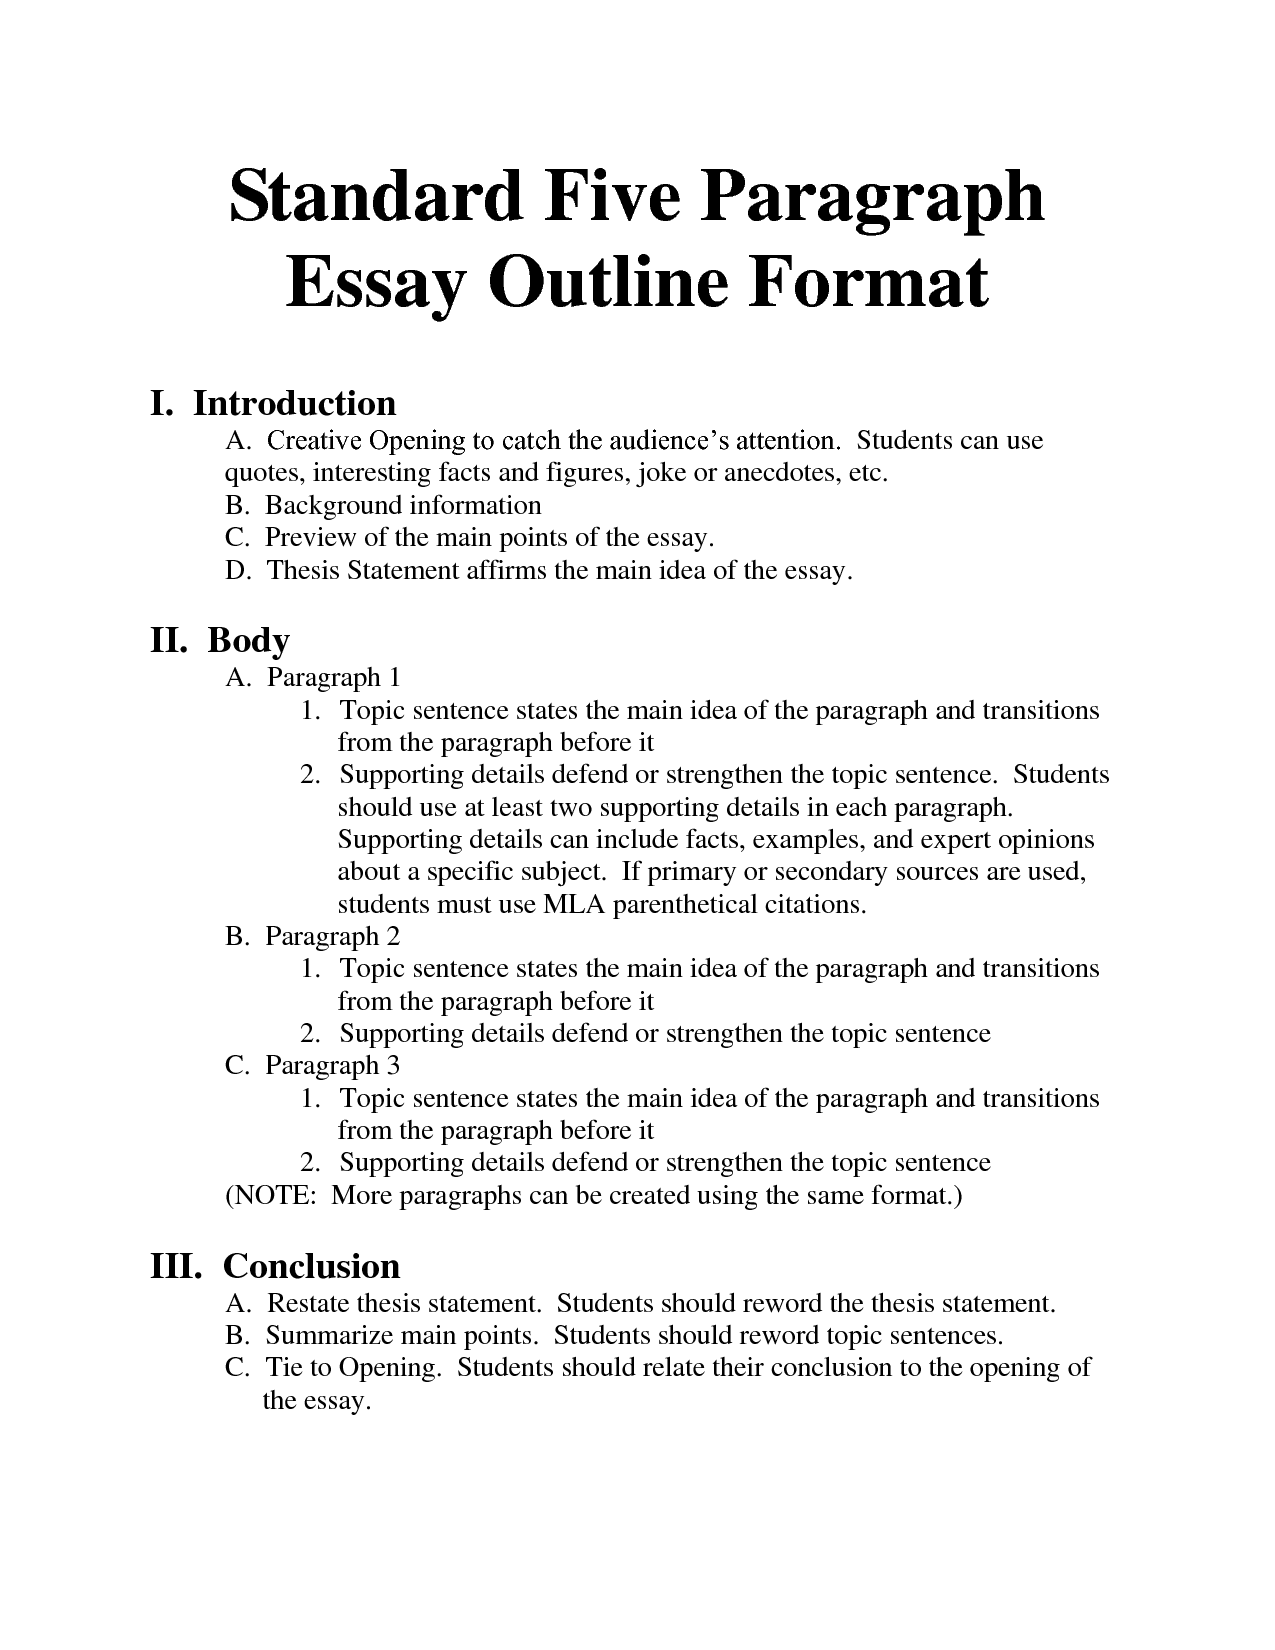 Science Fair Essay  A Modest Proposal Ideas For Essays also High School Essay Writing Standard Essay Format   Bing Images  Undervisning  Essay Reflection Paper Examples